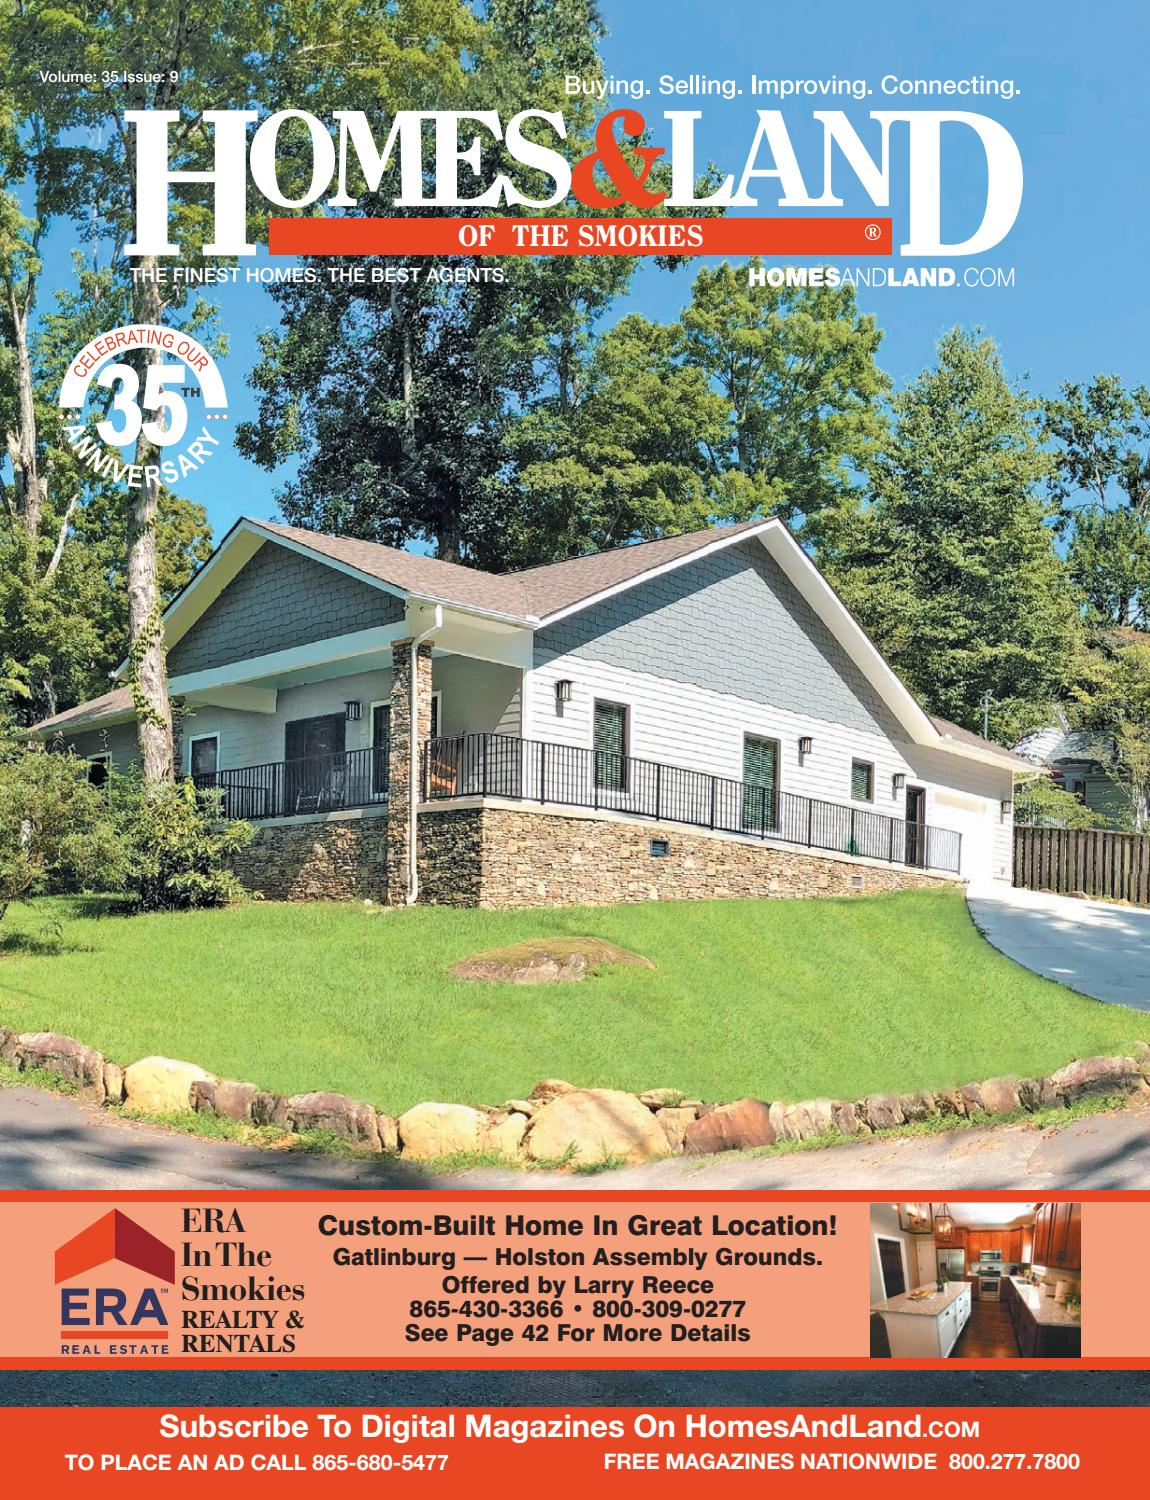 Homes Land Of The Smokies Vol 35 Issue 9 By Homes Land Of Tennessee Issuu